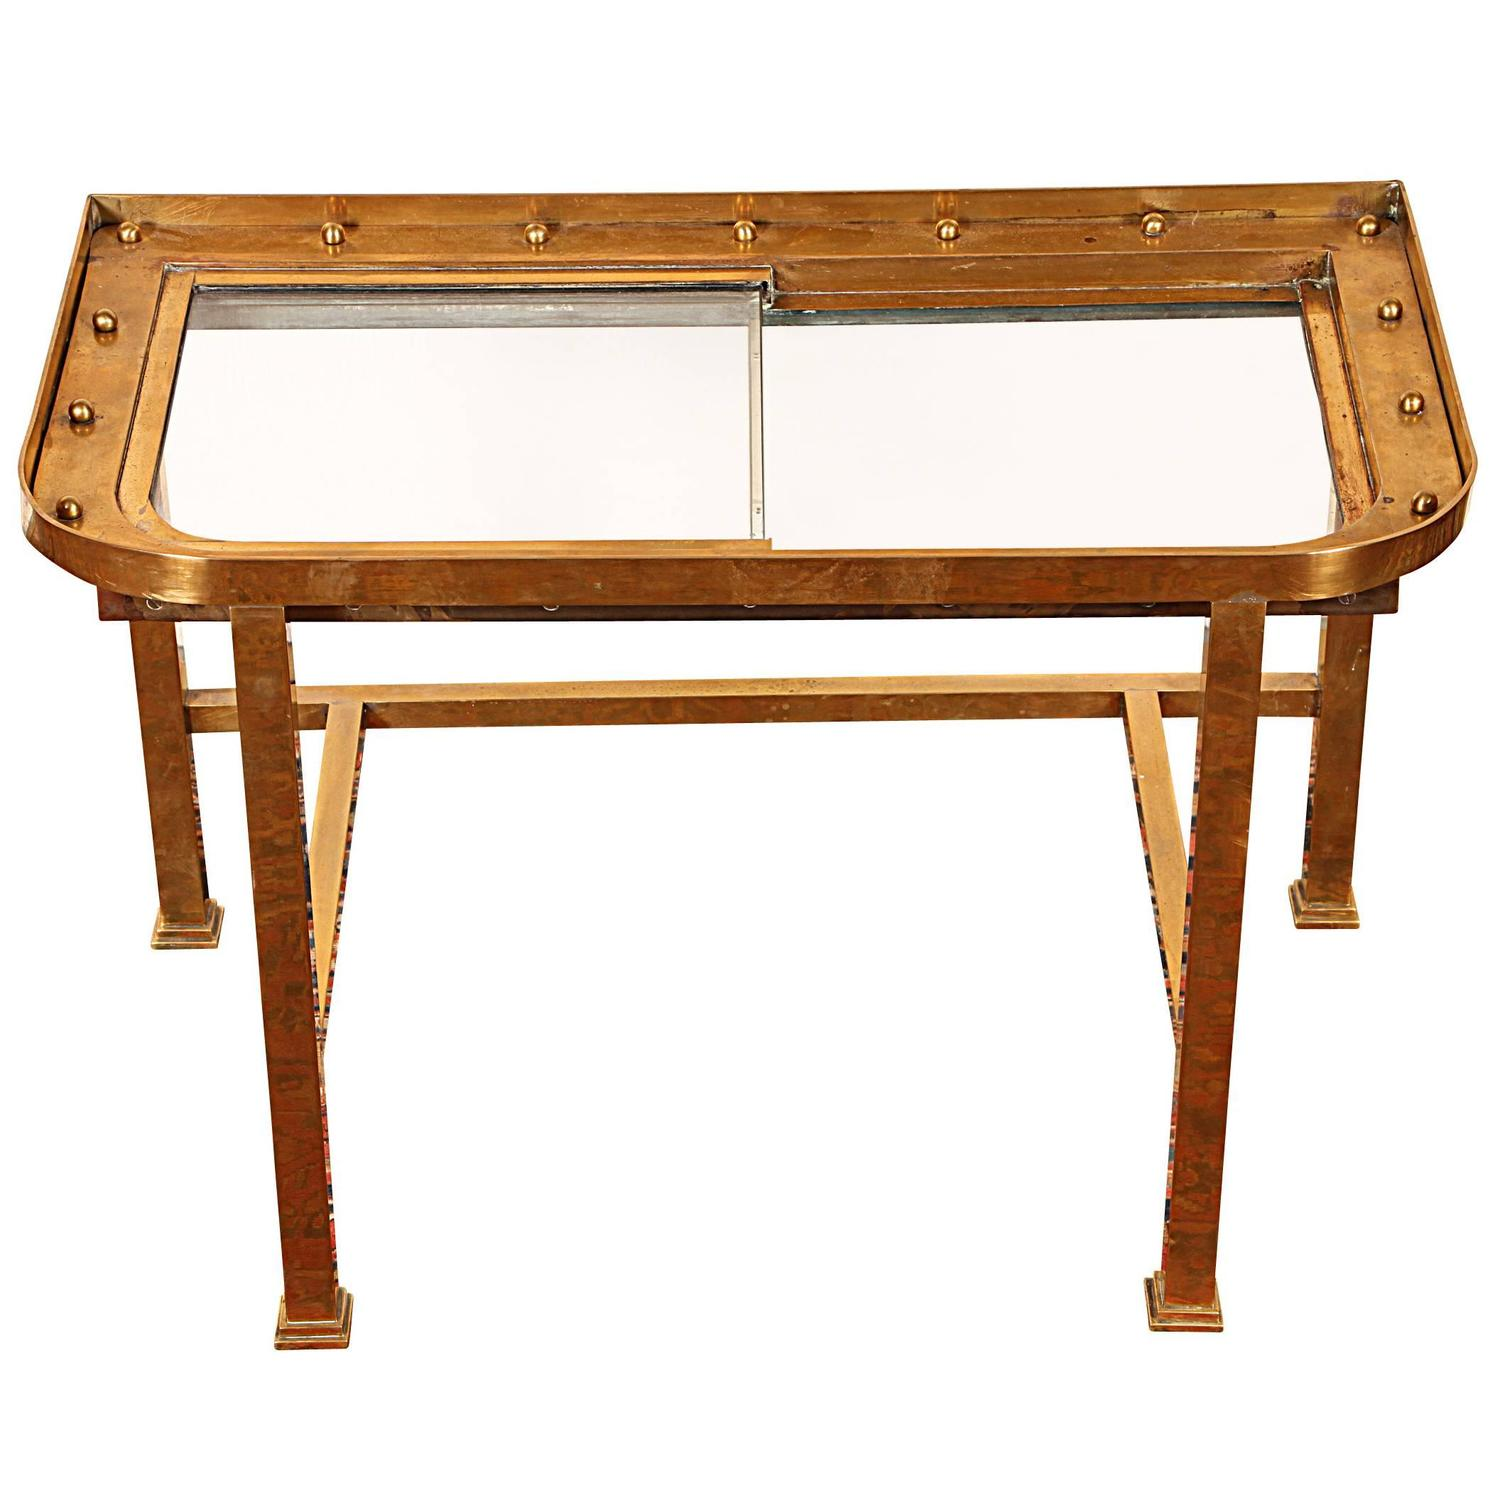 unique antique nautical window custom mounted as table for sale at 1stdibs. Black Bedroom Furniture Sets. Home Design Ideas